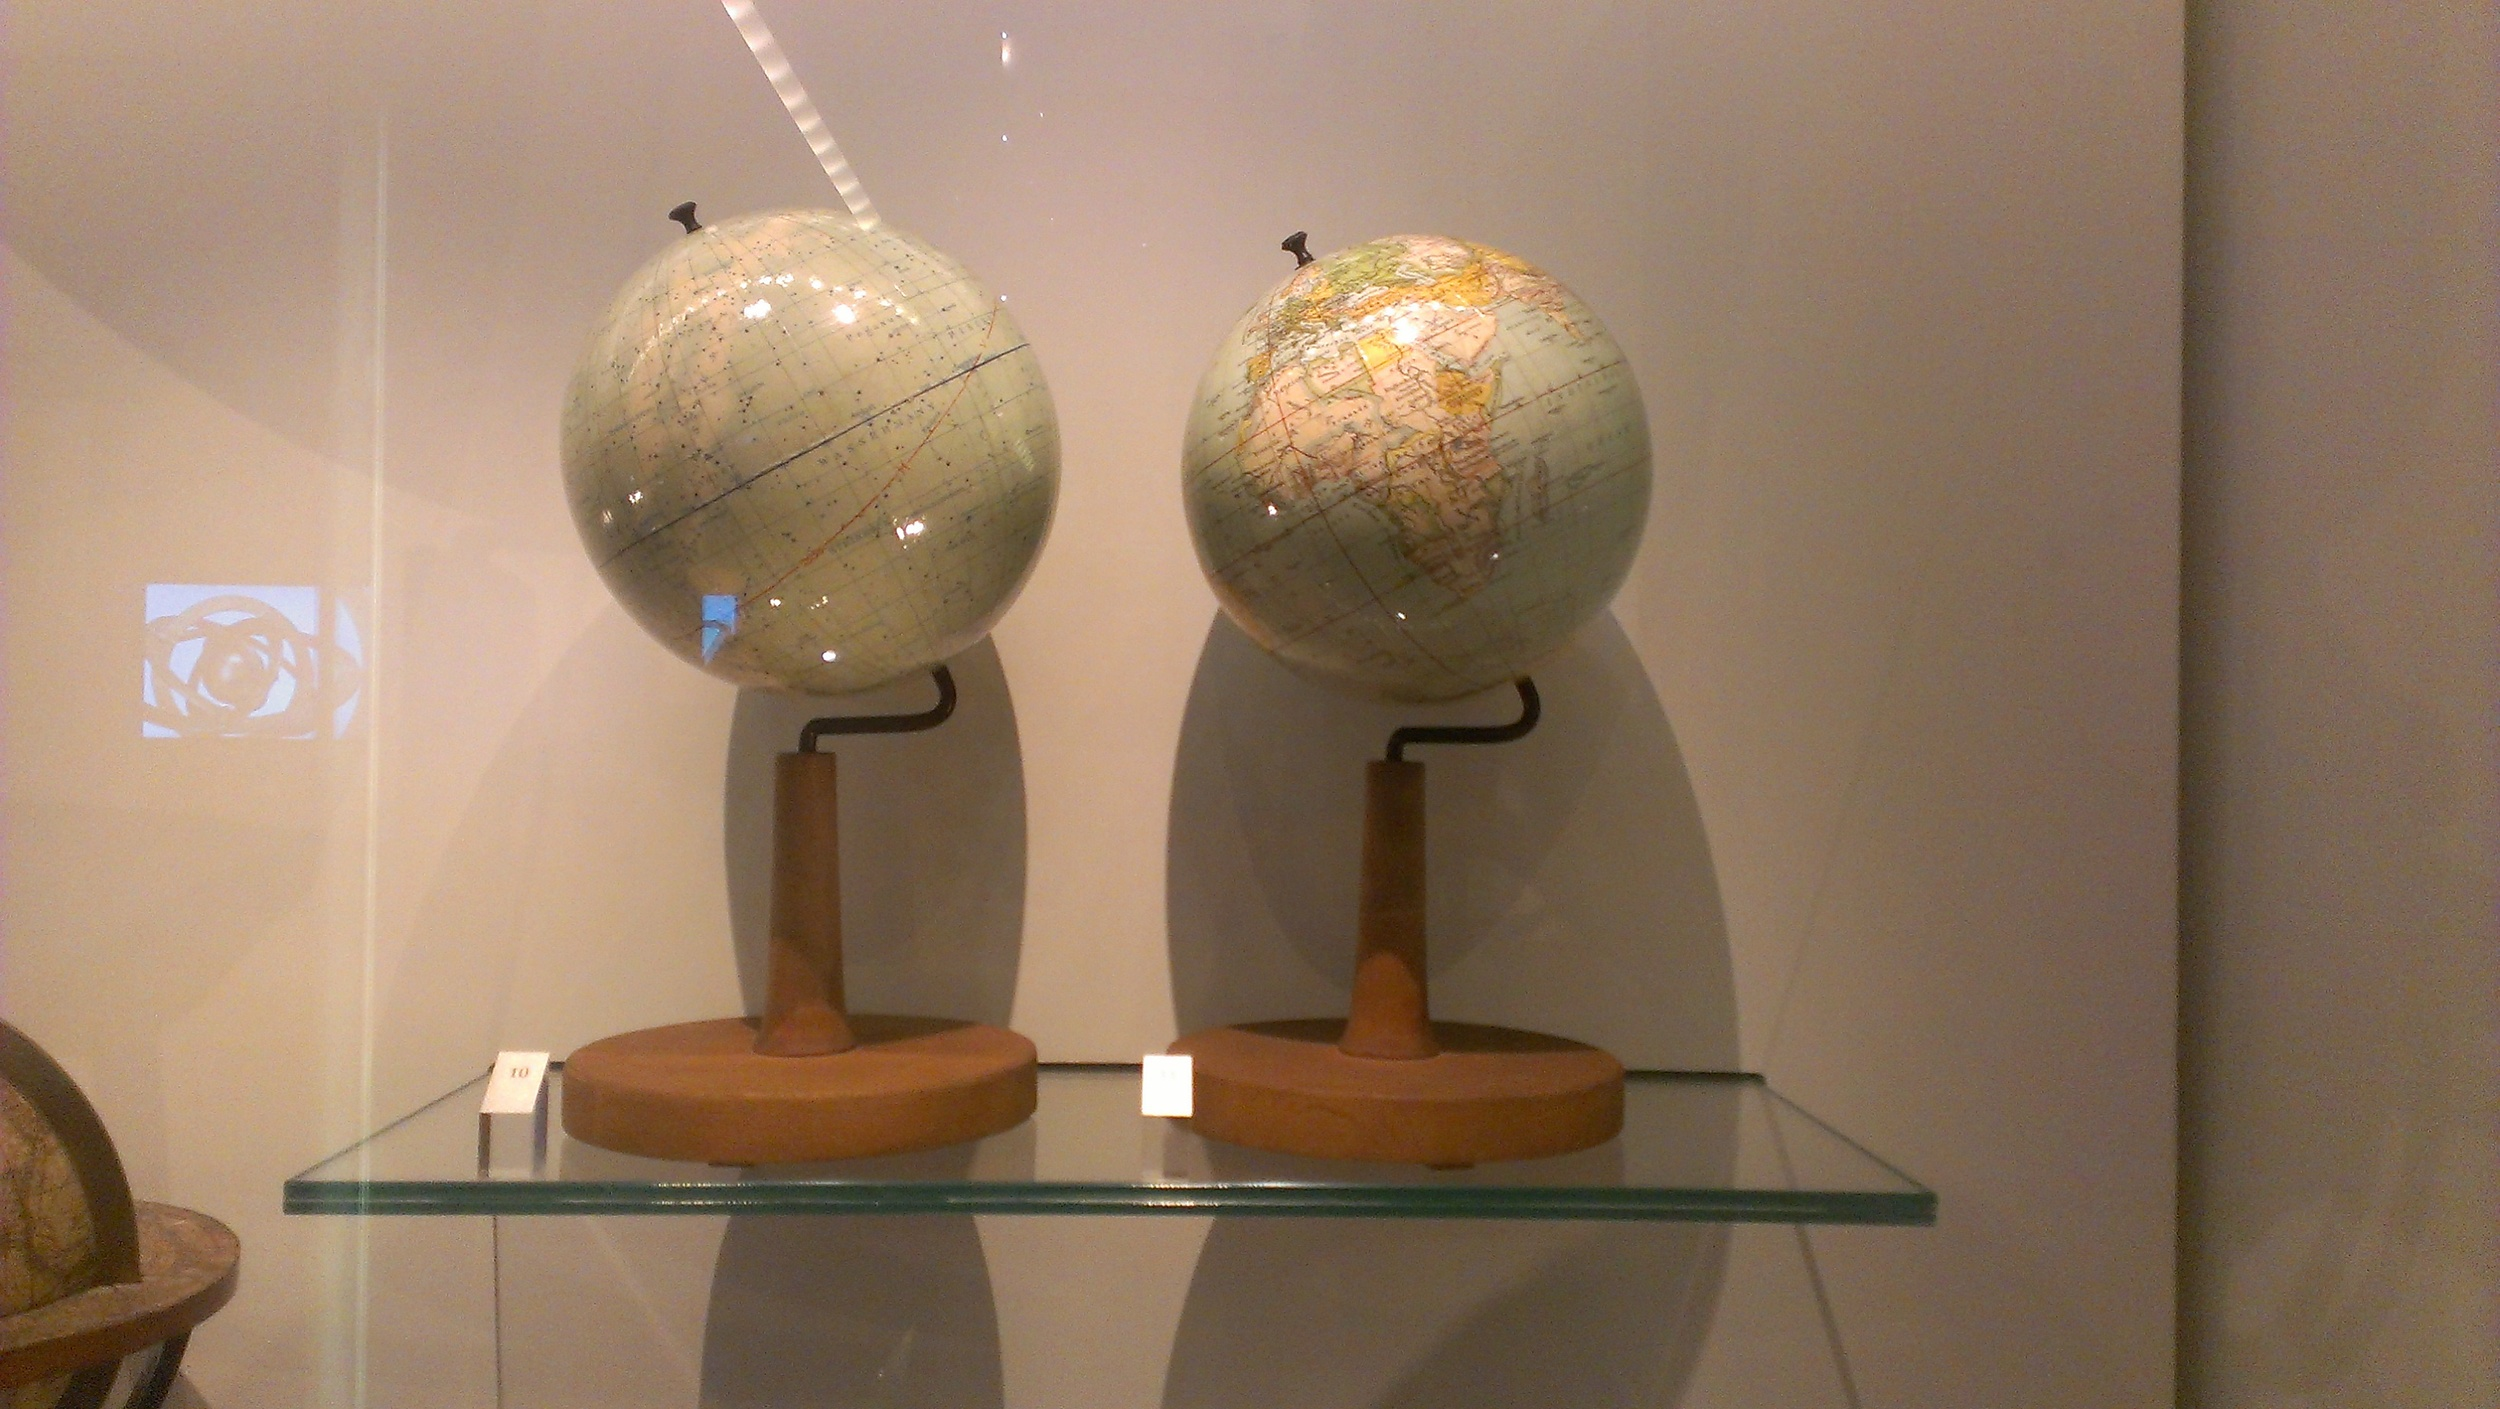 Celestial and terrestrial globe pair.  They look awesomely mid-century